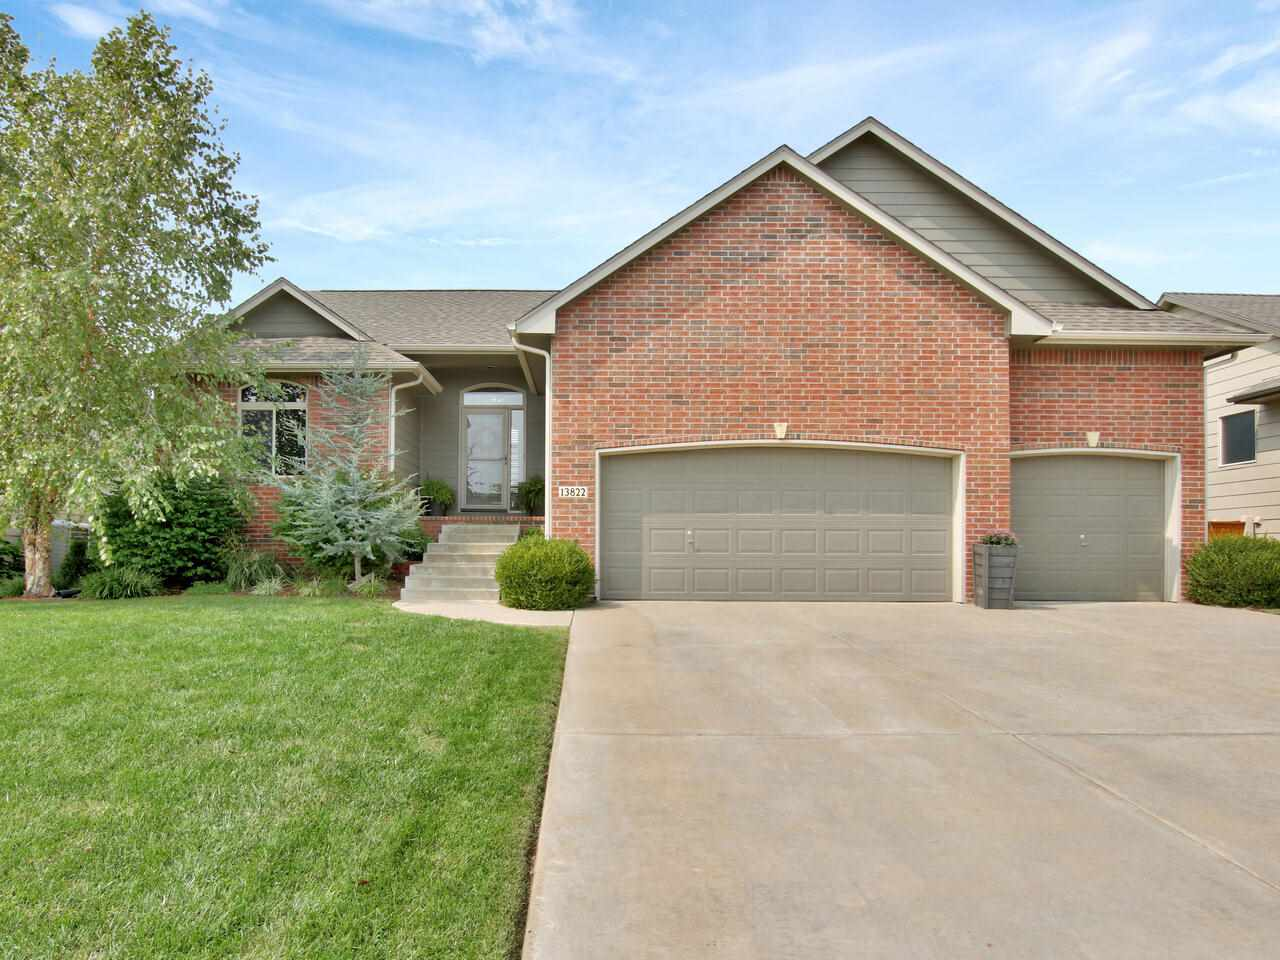 Drop dead gorgeous! This is a 5 bed 3 bath home you must see to believe. Everything has been perfect